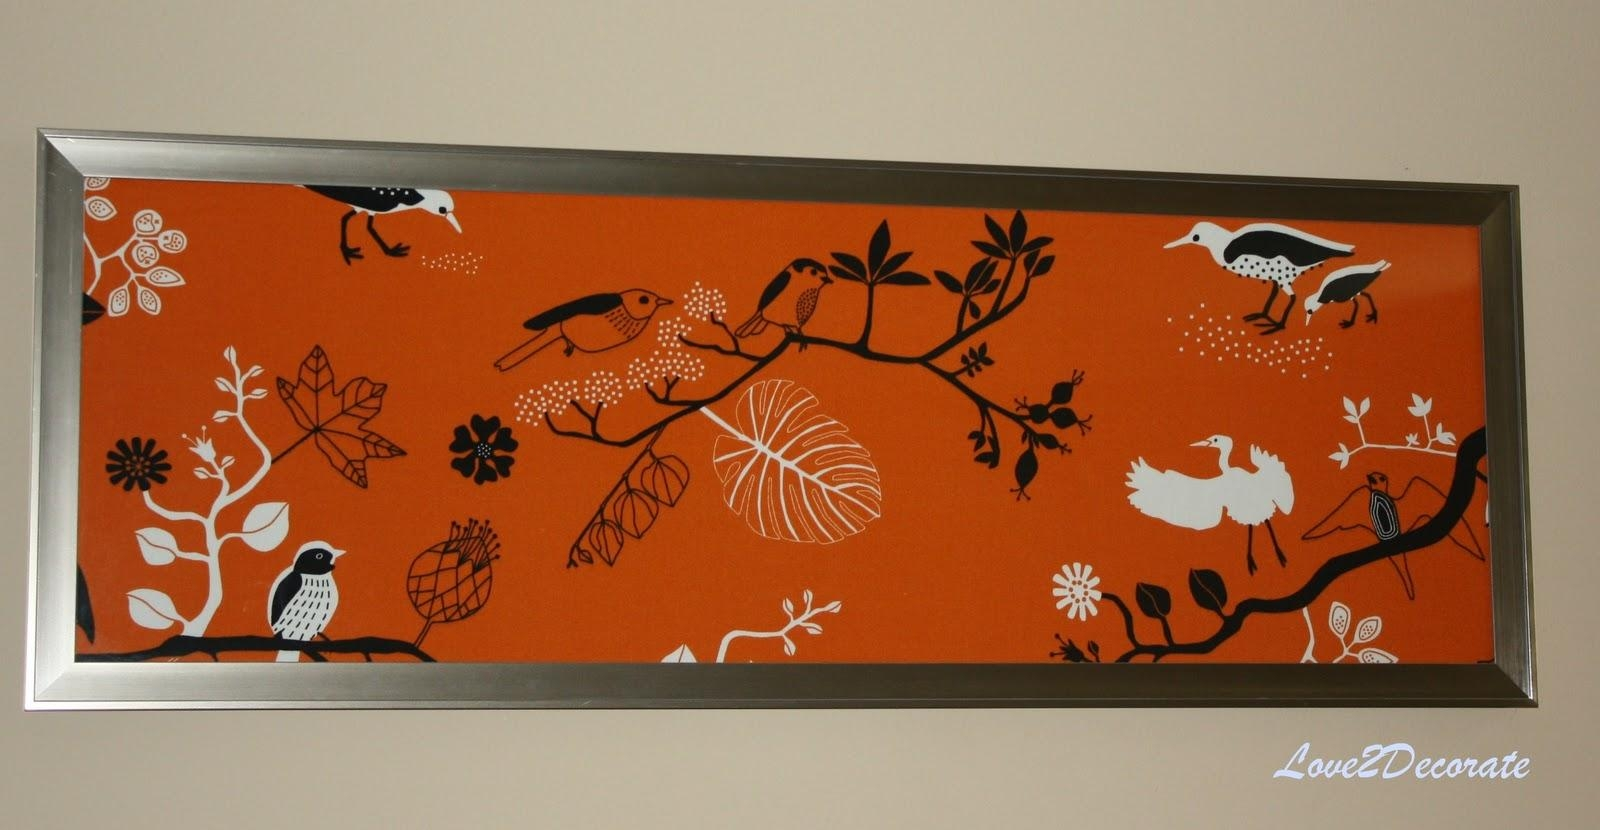 Love 2 Decorate: Frame + Fabric = Wall Art Throughout Fabric Wall Art (View 13 of 20)